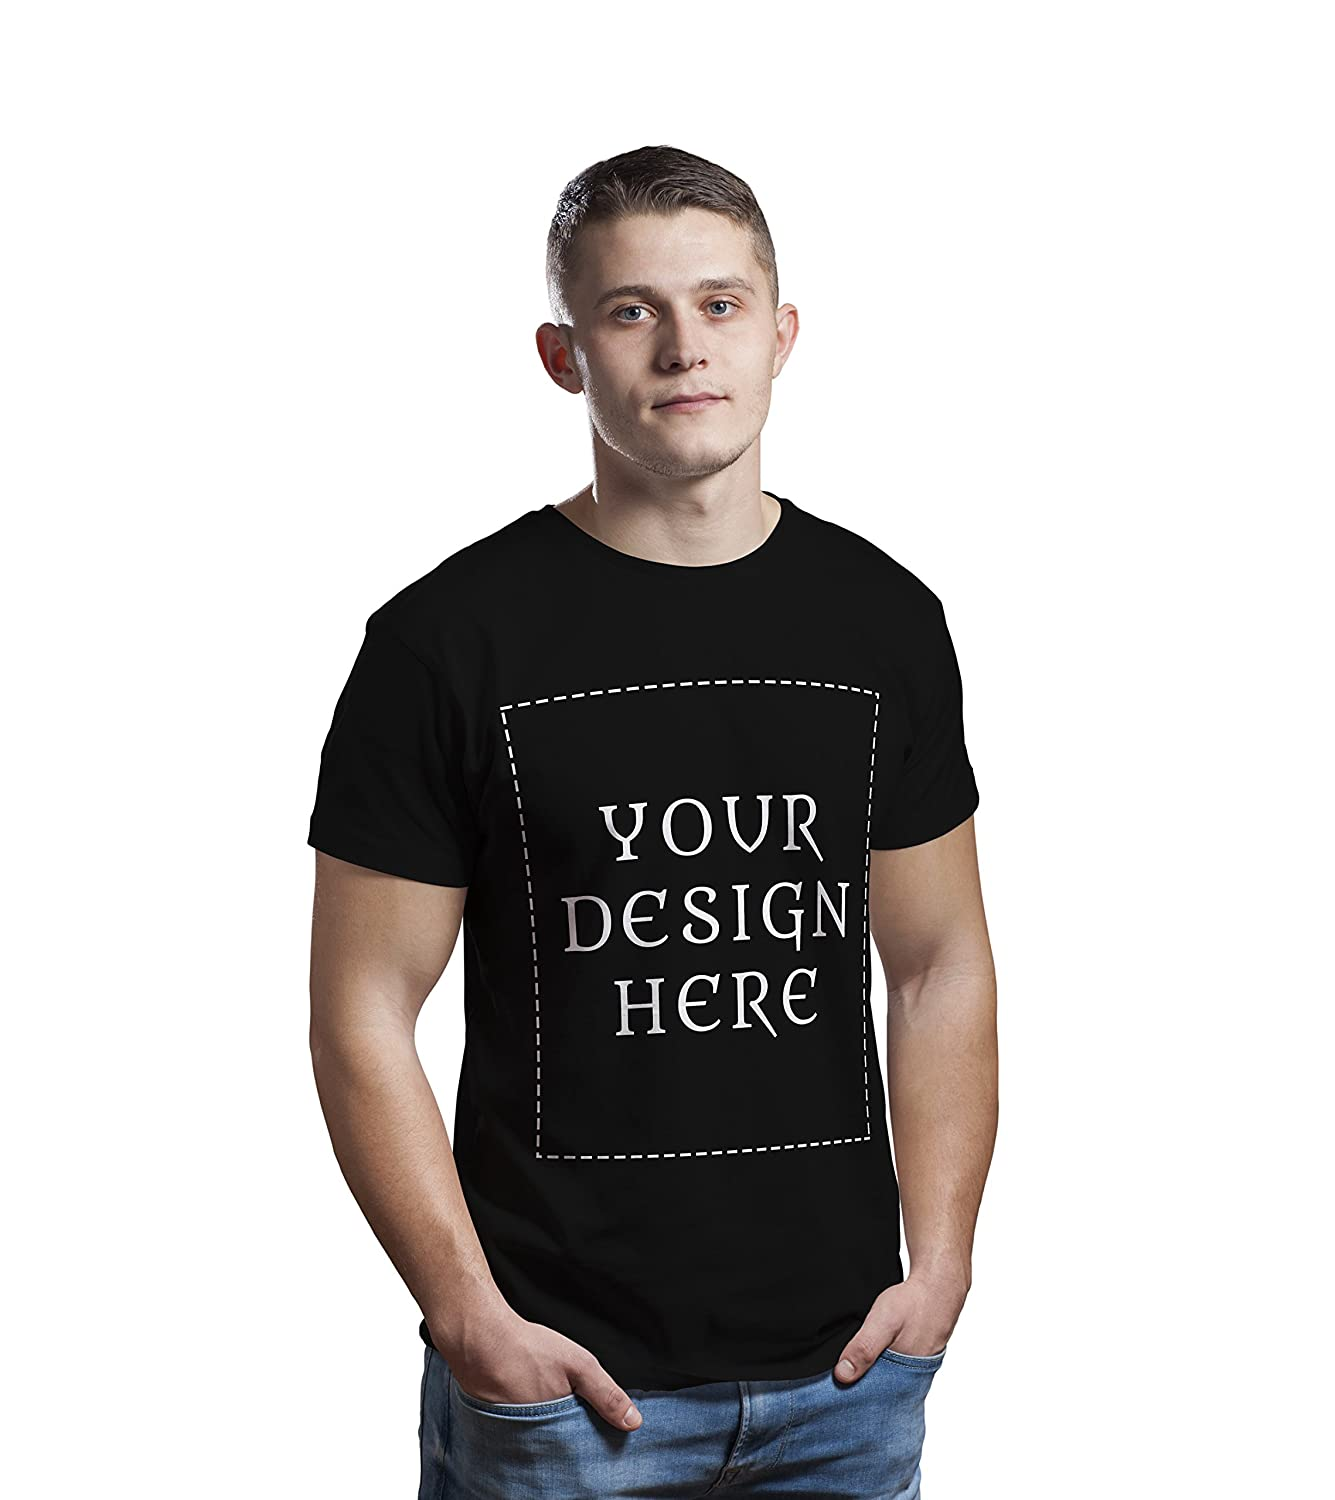 5181fa3d ONCE YOU choose the custom tee shirts you want, you will provide us with the  design you want to be printed on the t-shirt. Our well-experienced t-shirt  ...